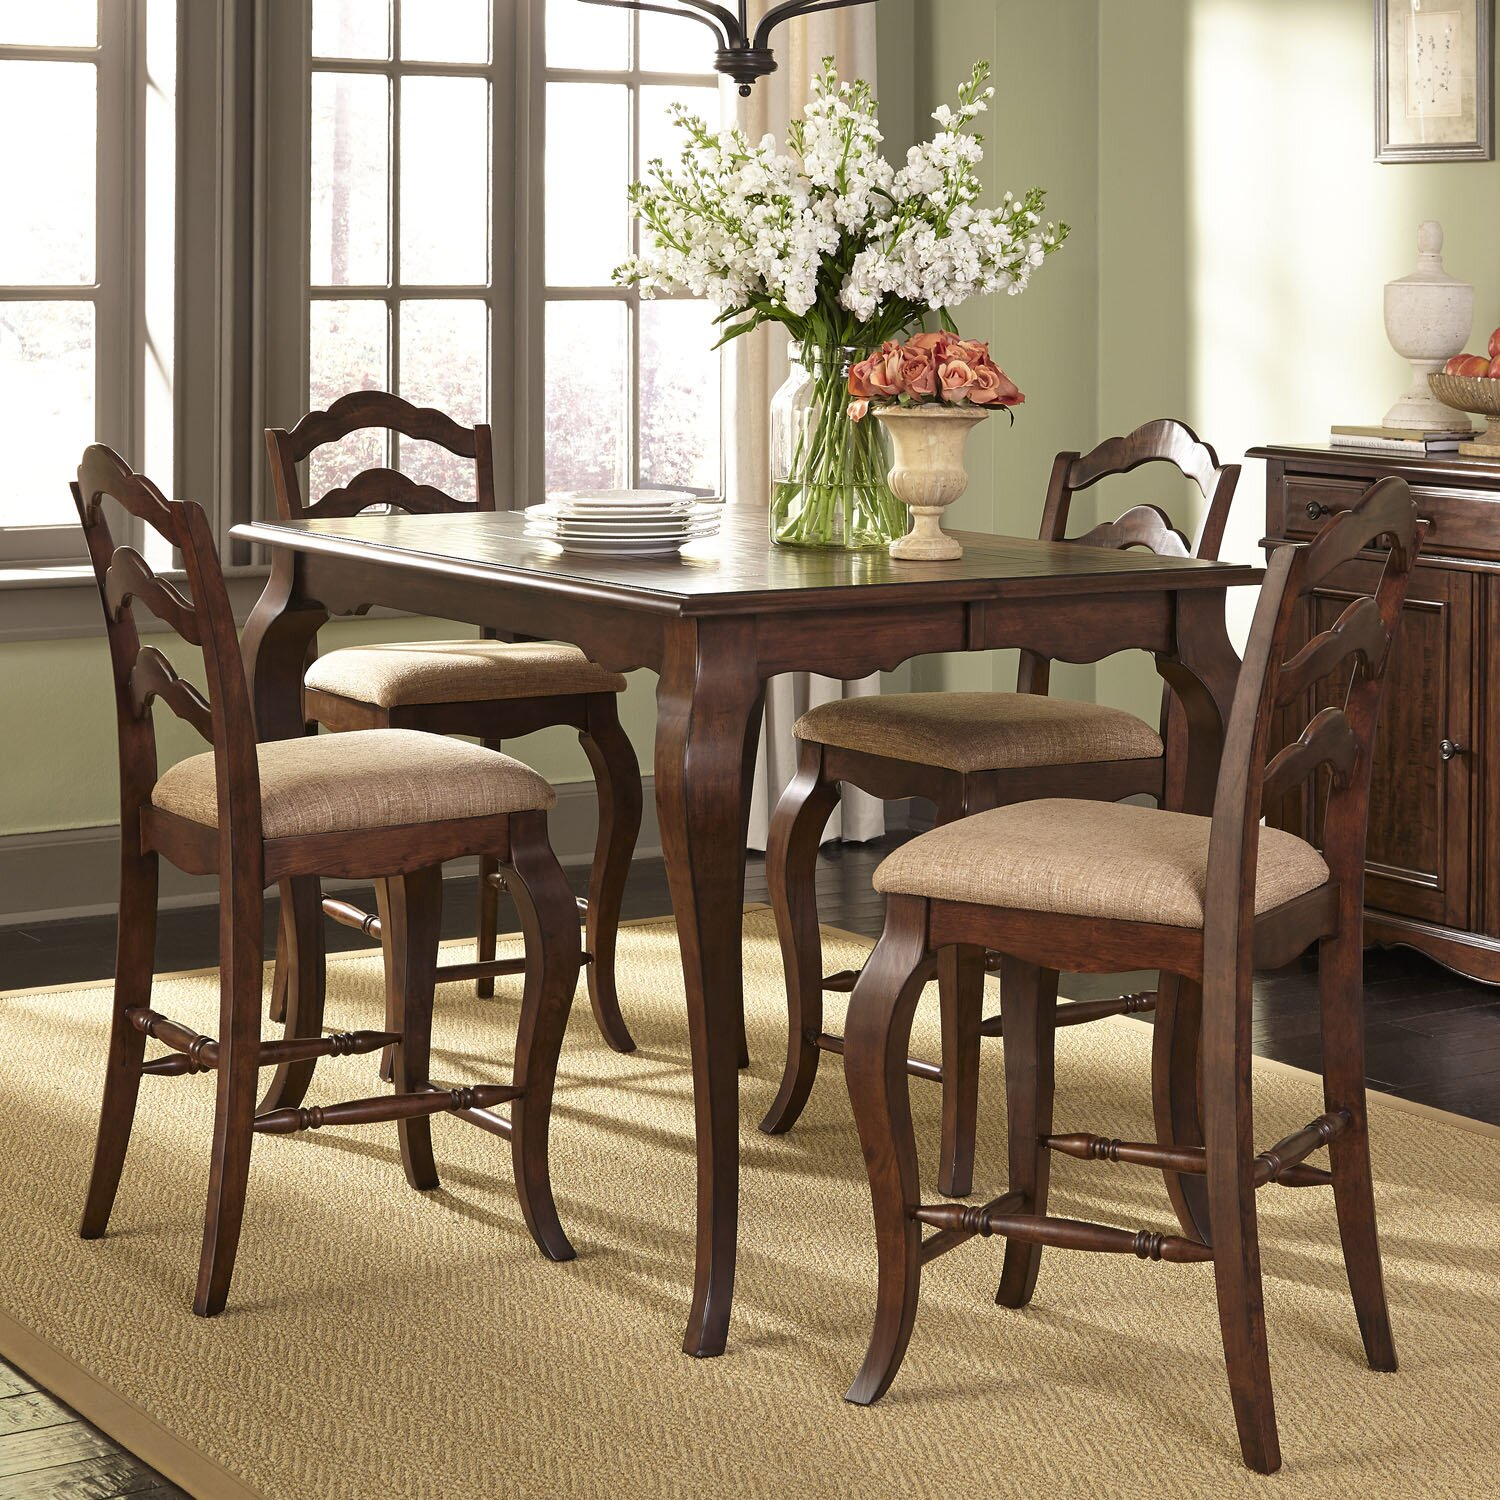 Liberty furniture dining sets liberty furniture 7 dining for Furniture 7 reviews